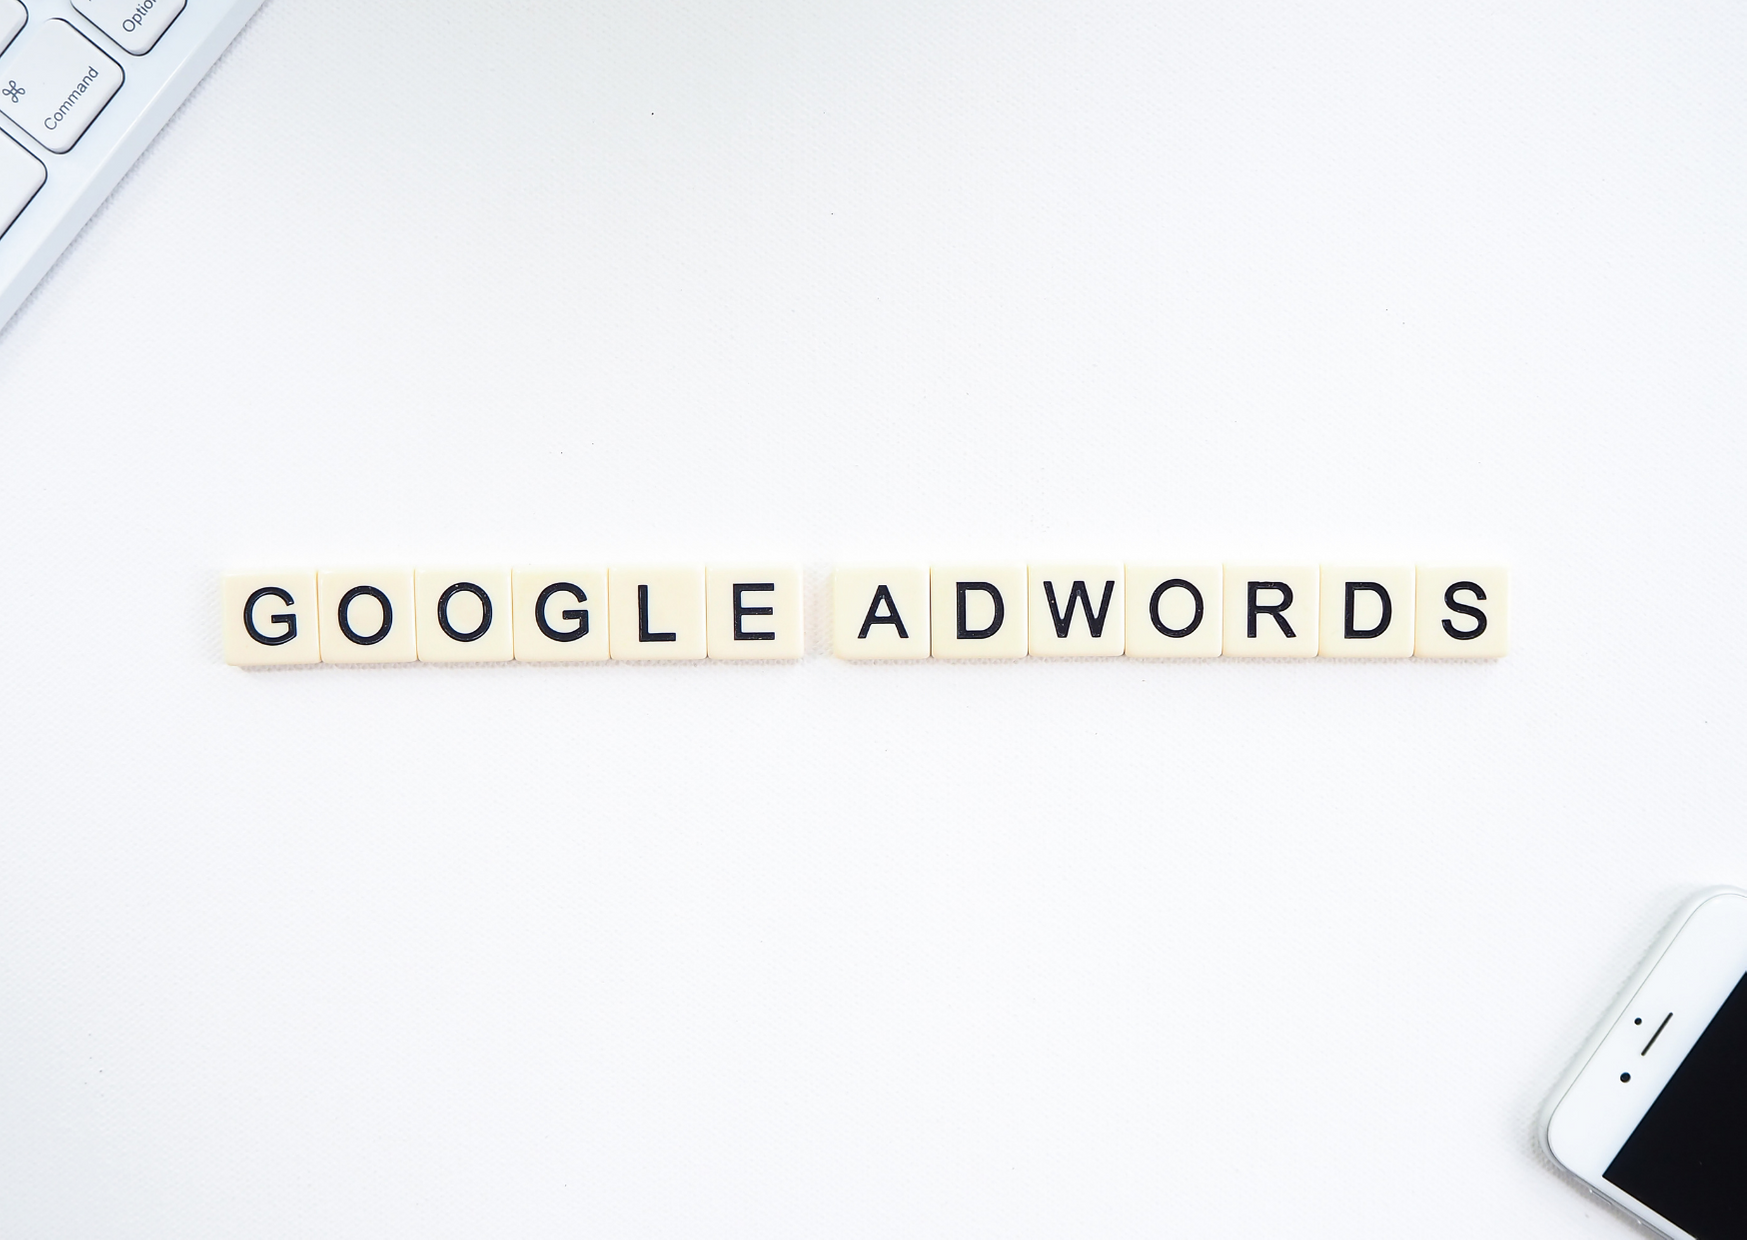 How to give access to Google Adwords